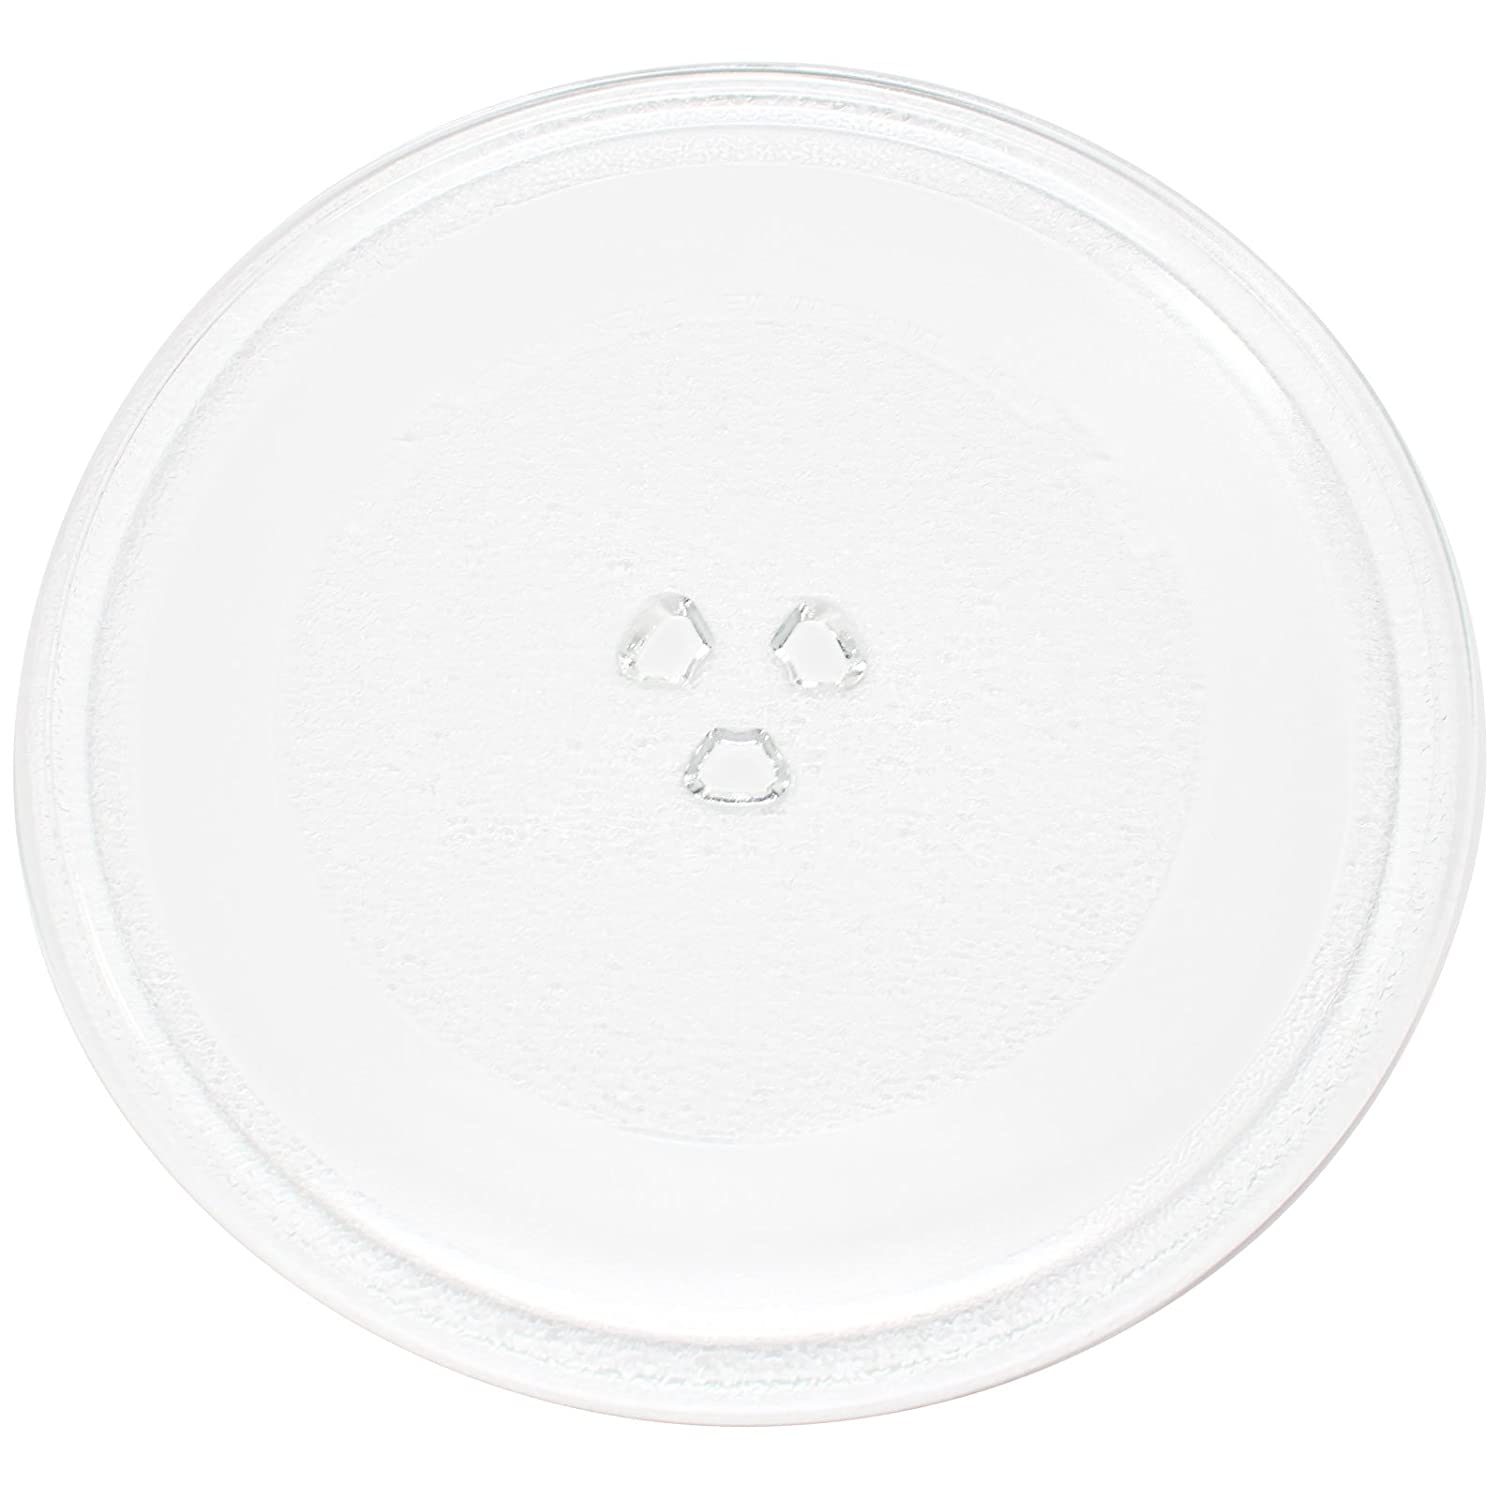 "Replacement Emerson MW7300 Microwave Glass Plate - Compatible Emerson 203600 Microwave Glass Turntable Tray - 10"" (255mm)"